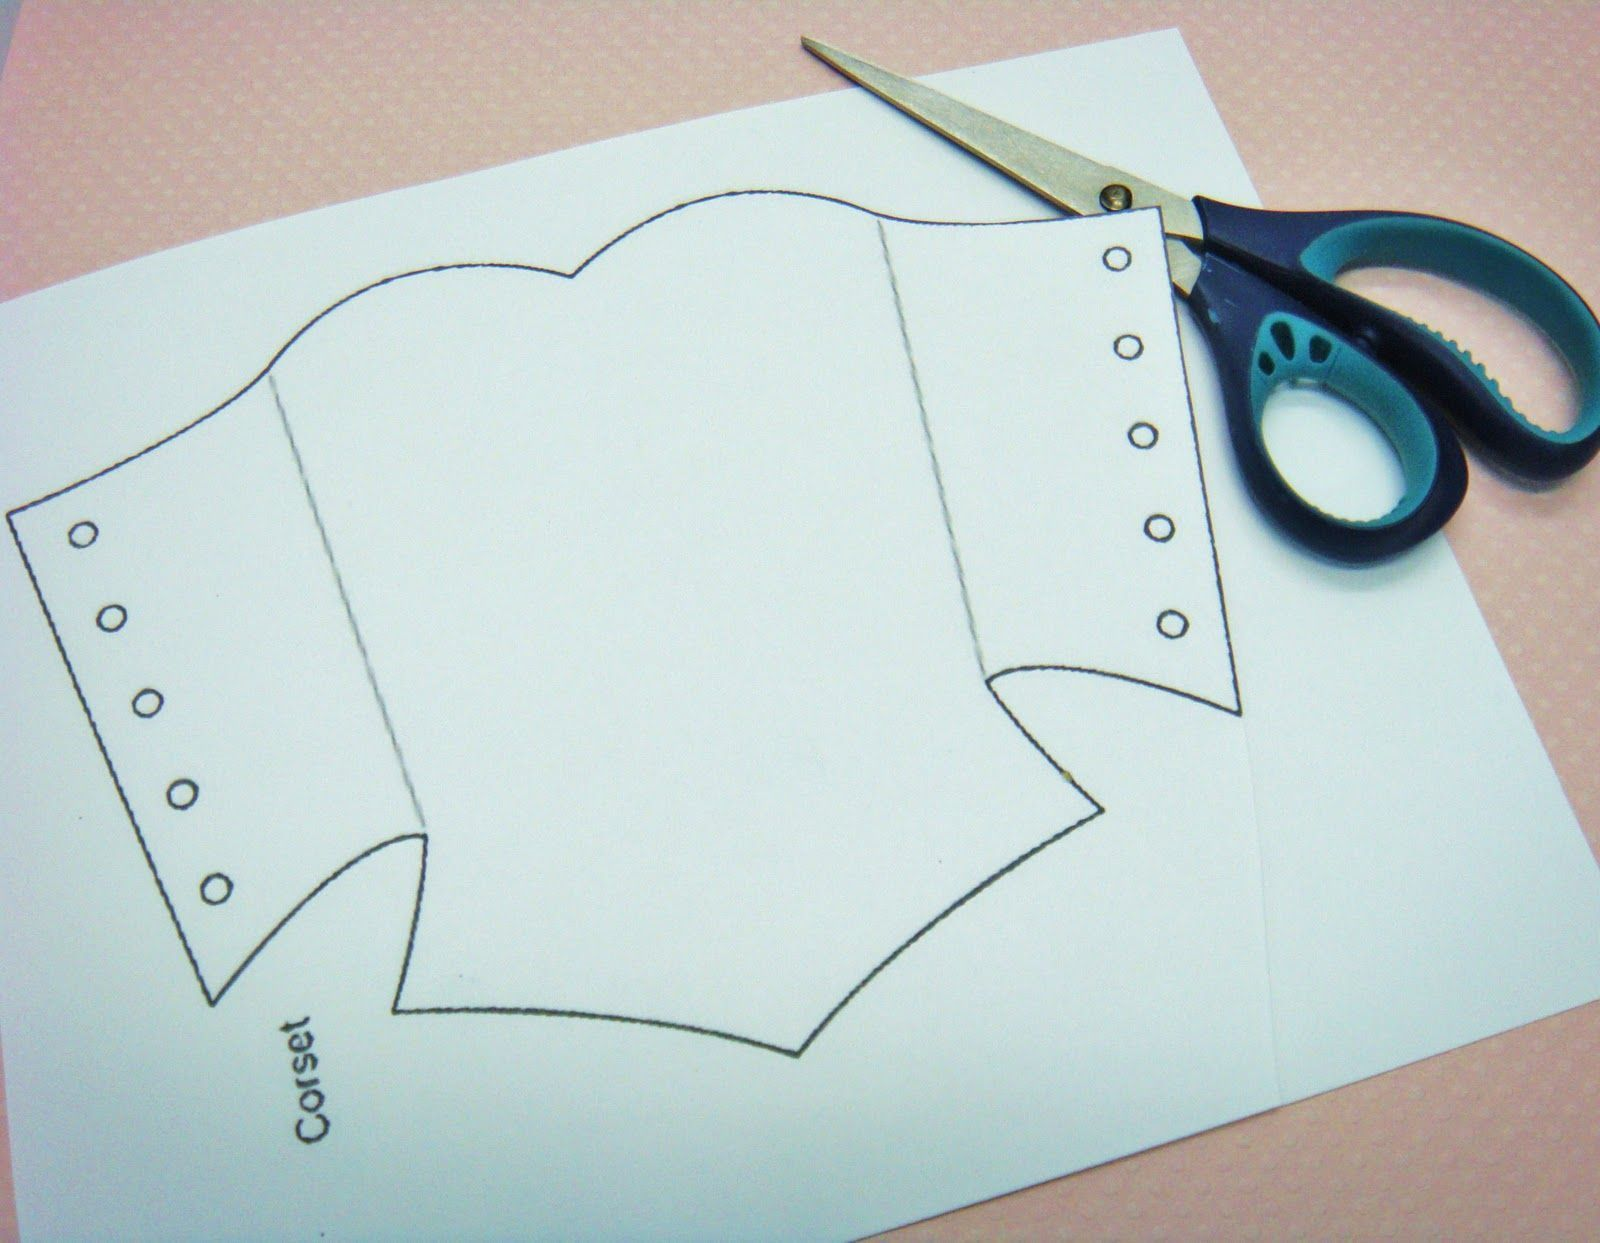 corset tag pattern..... Basic design to almost all the princess dresses.... scraps of pretty paper or fabric + glue + this pattern = hours of almost free entertainment!! #bedfalls62 corset tag pattern..... Basic design to almost all the princess dresses.... scraps of pretty paper or fabric + glue + this pattern = hours of almost free entertainment!! #bedfalls62 corset tag pattern..... Basic design to almost all the princess dresses.... scraps of pretty paper or fabric + glue + this pattern = hou #bedfalls62